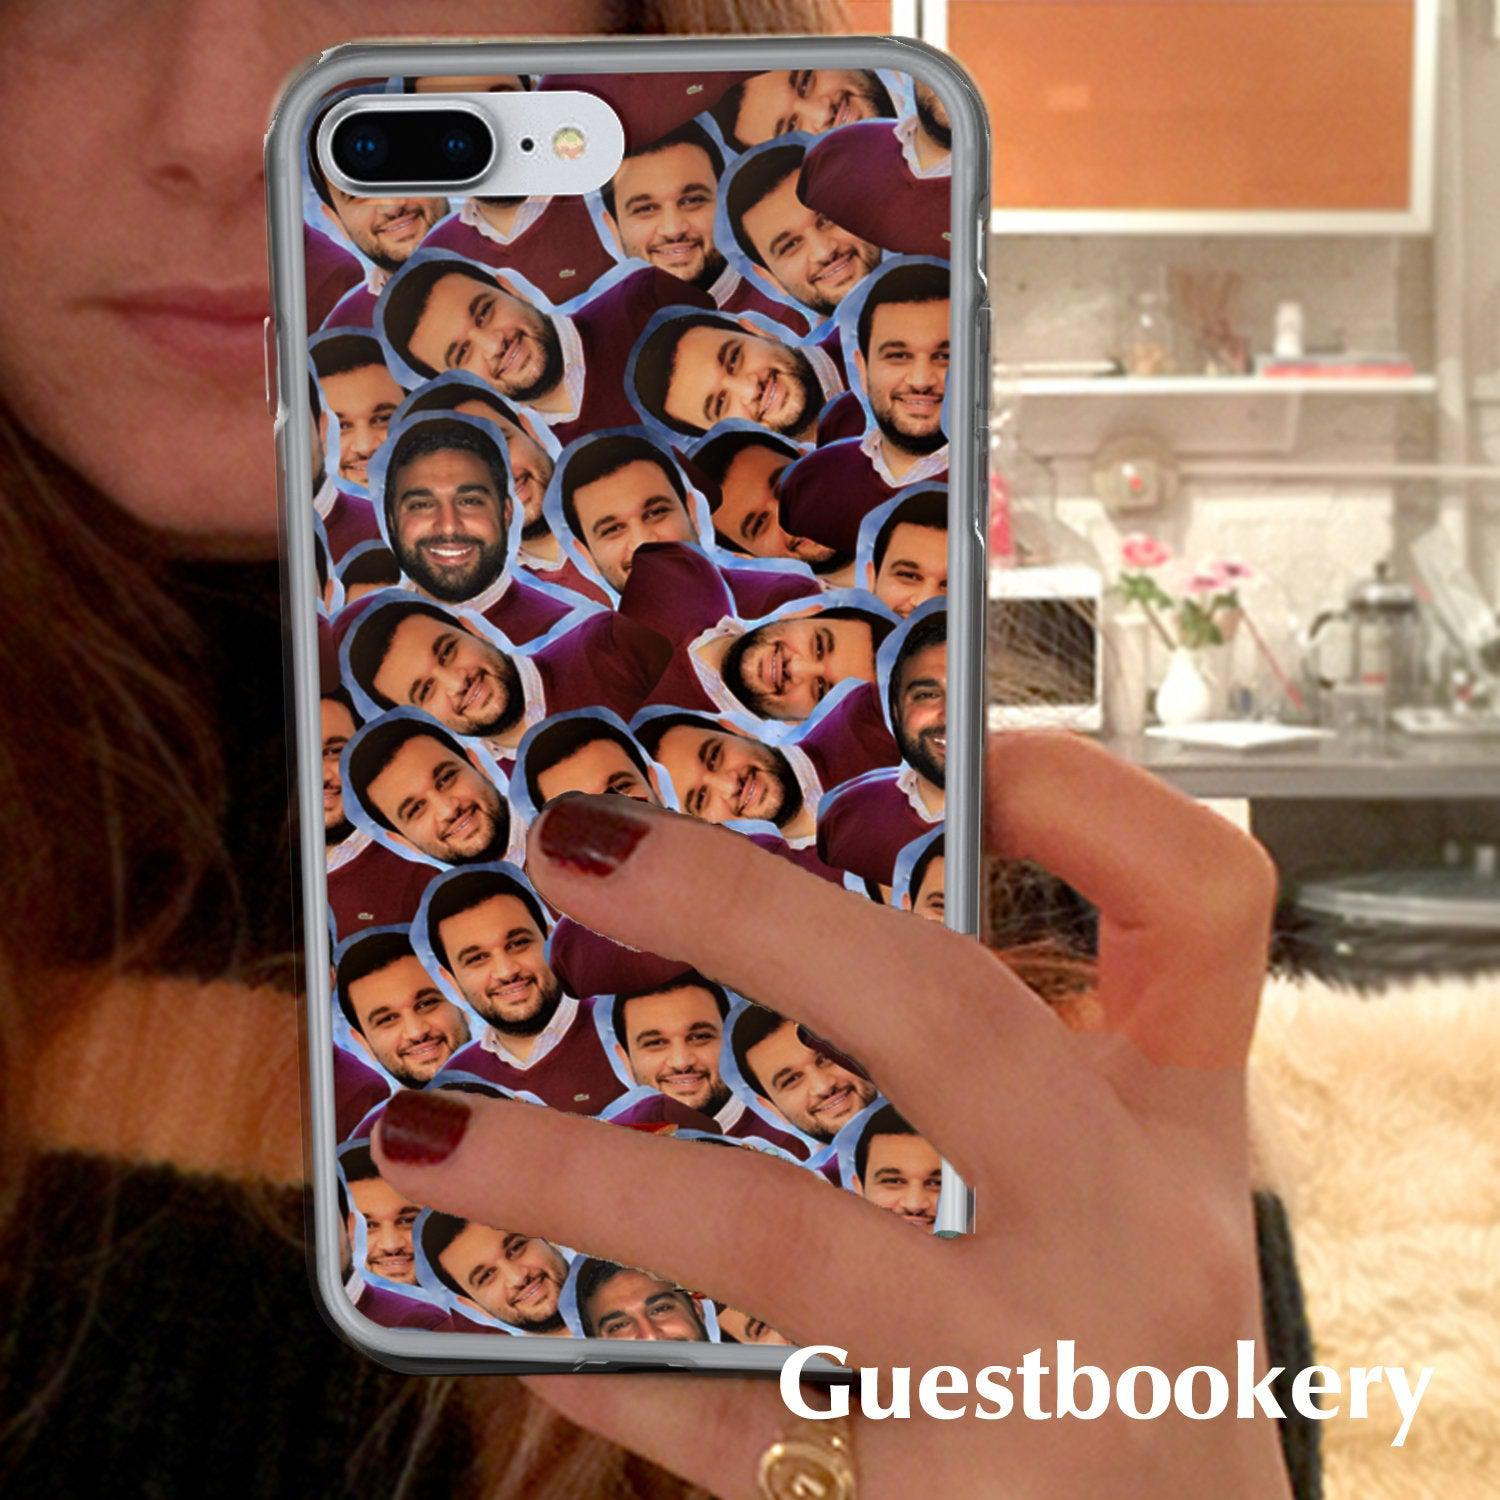 Custom Faces Phone Case - Guestbookery